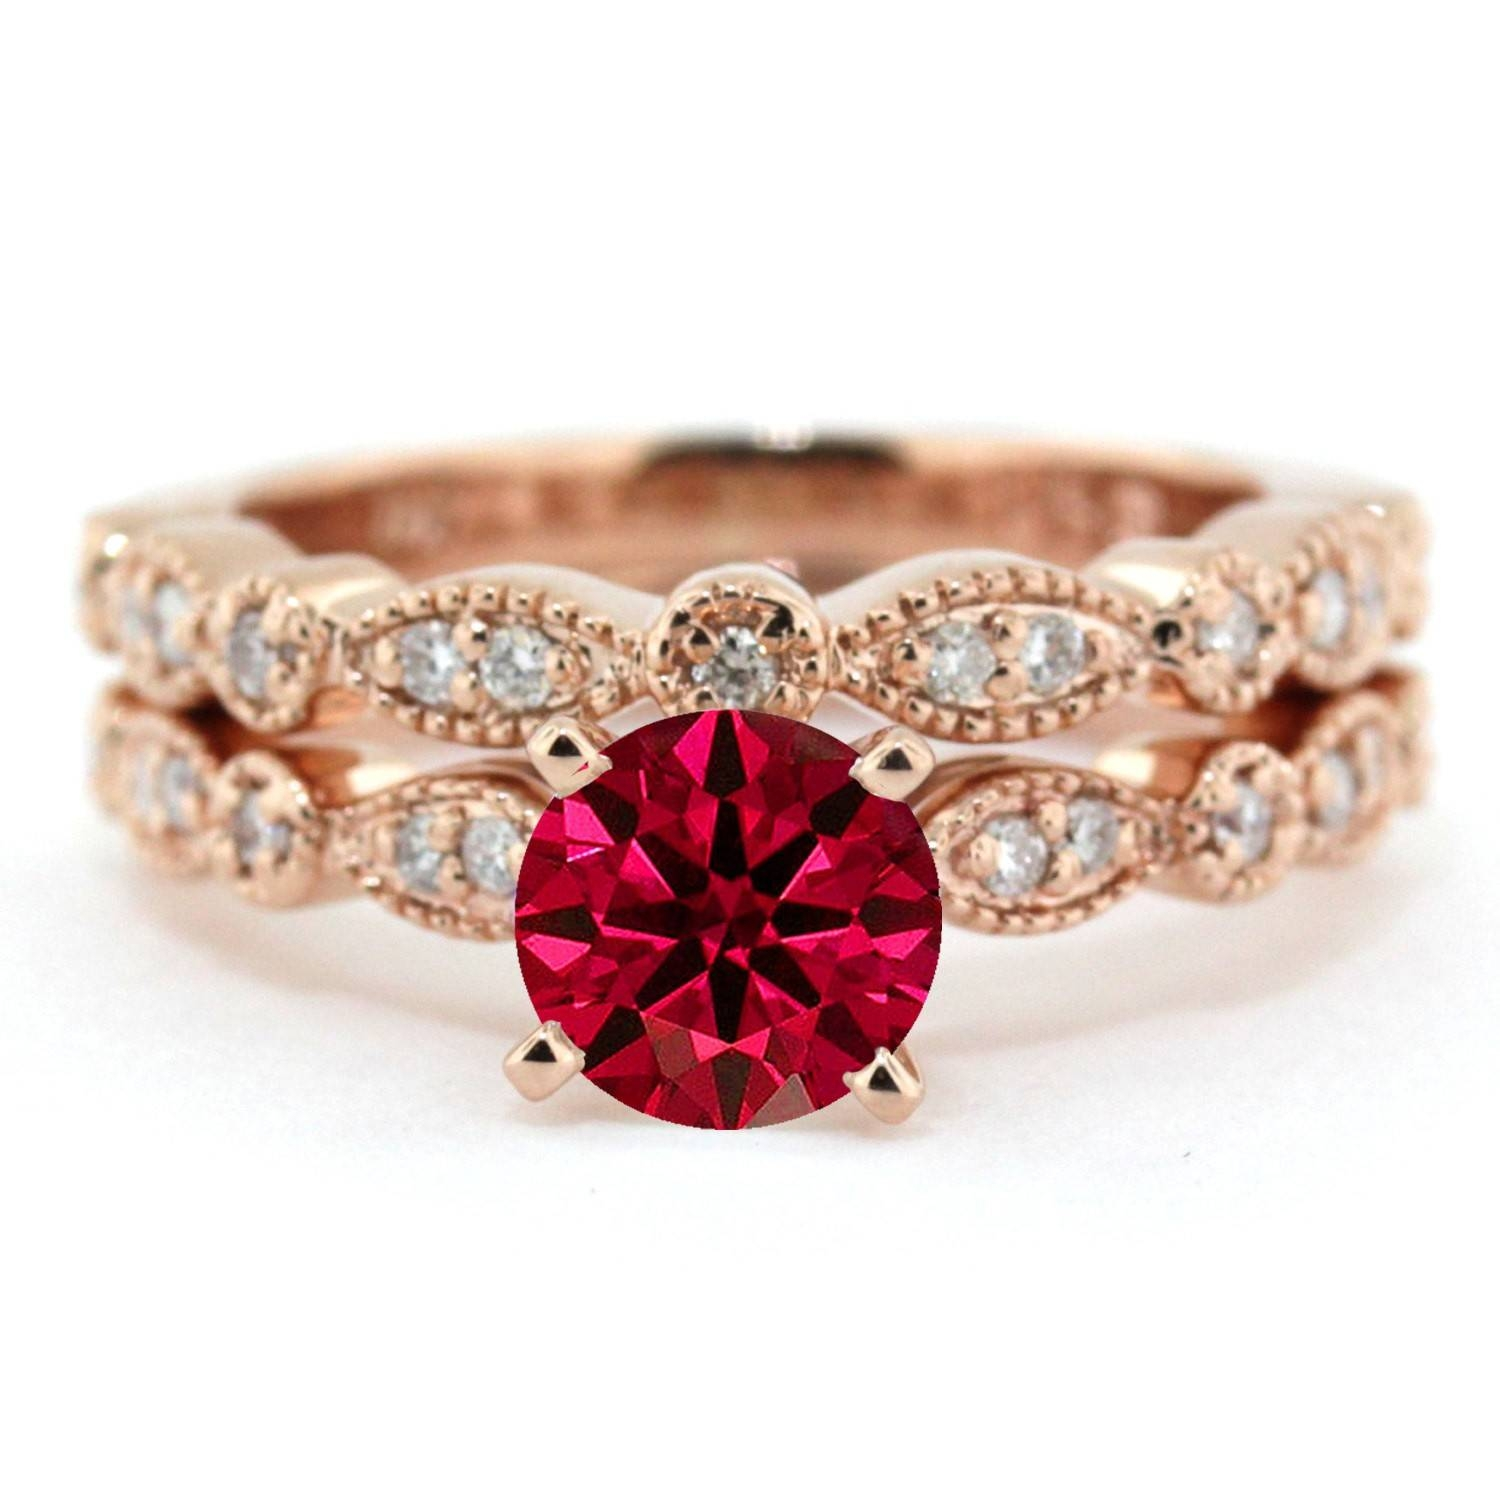 Ruby Rings | Ruby Engagement Rings | Ruby Diamond Rings Inside Gold Ruby Engagement Rings (View 8 of 15)